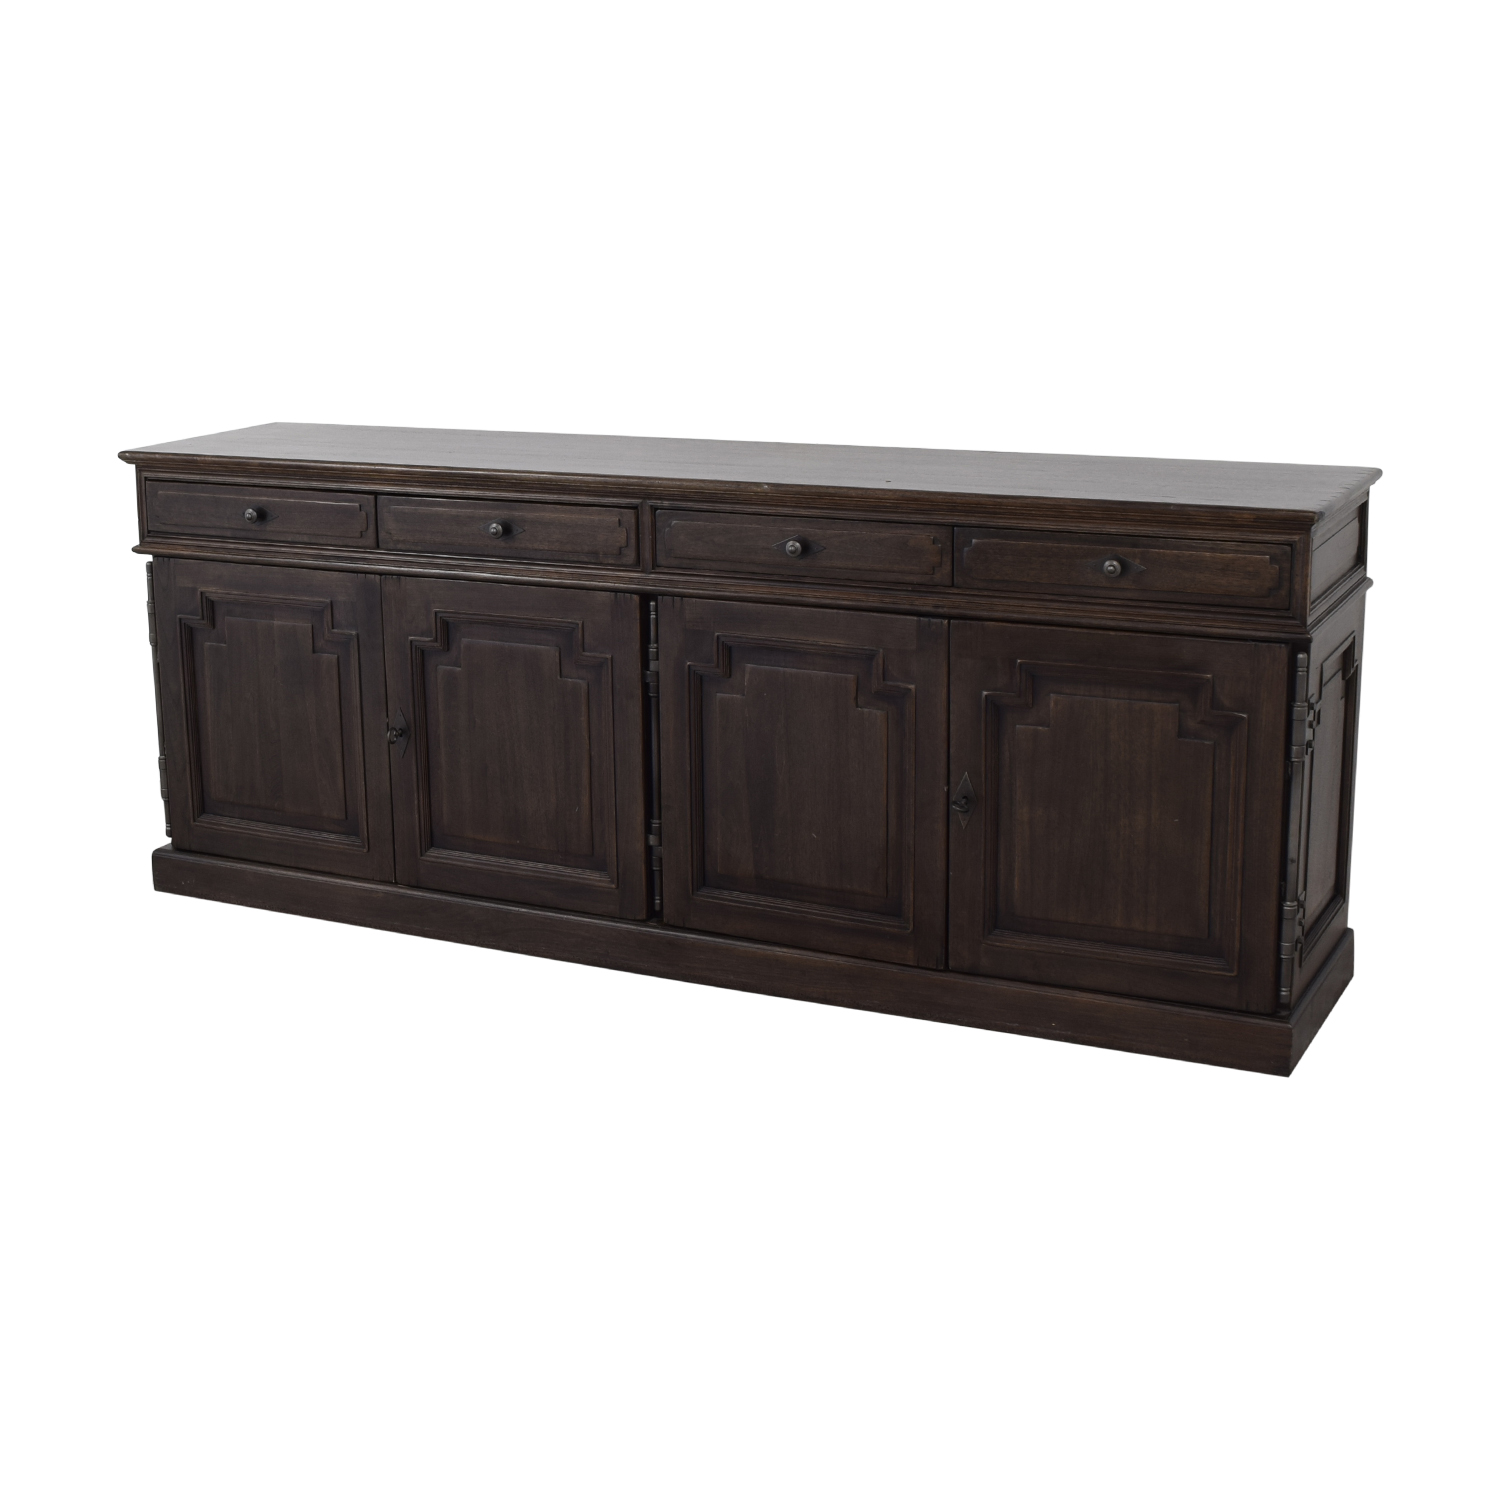 Restoration Hardware Restoration Hardware Montpellier Sideboard With Drawers for sale